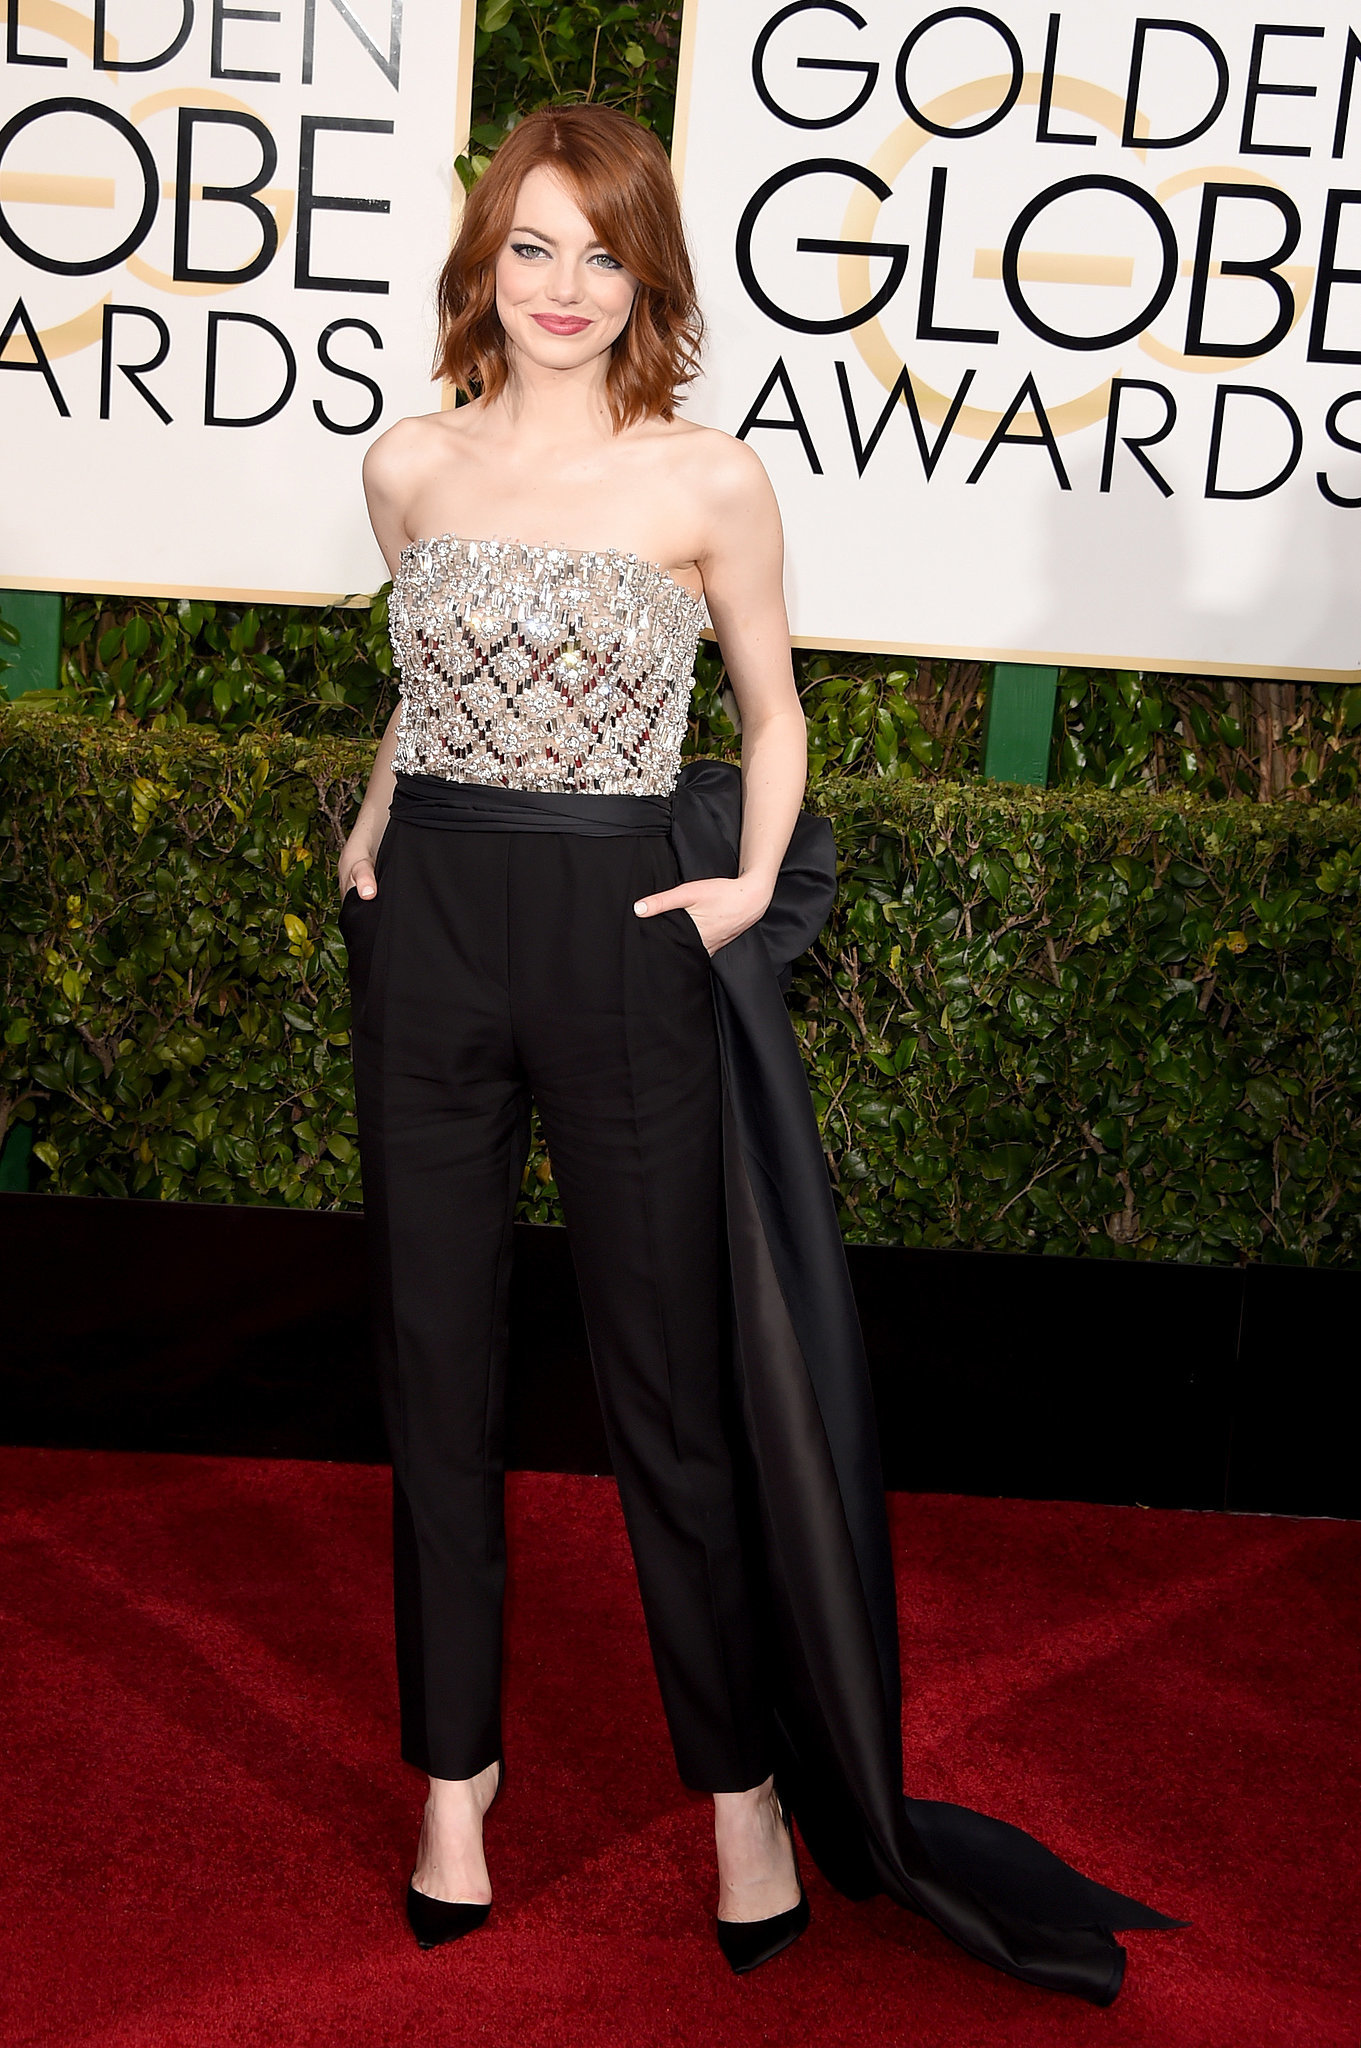 Emma Stone in Lanvin Jumpsuit at 2015 Golden Globes ... Emma Stone Golden Globes